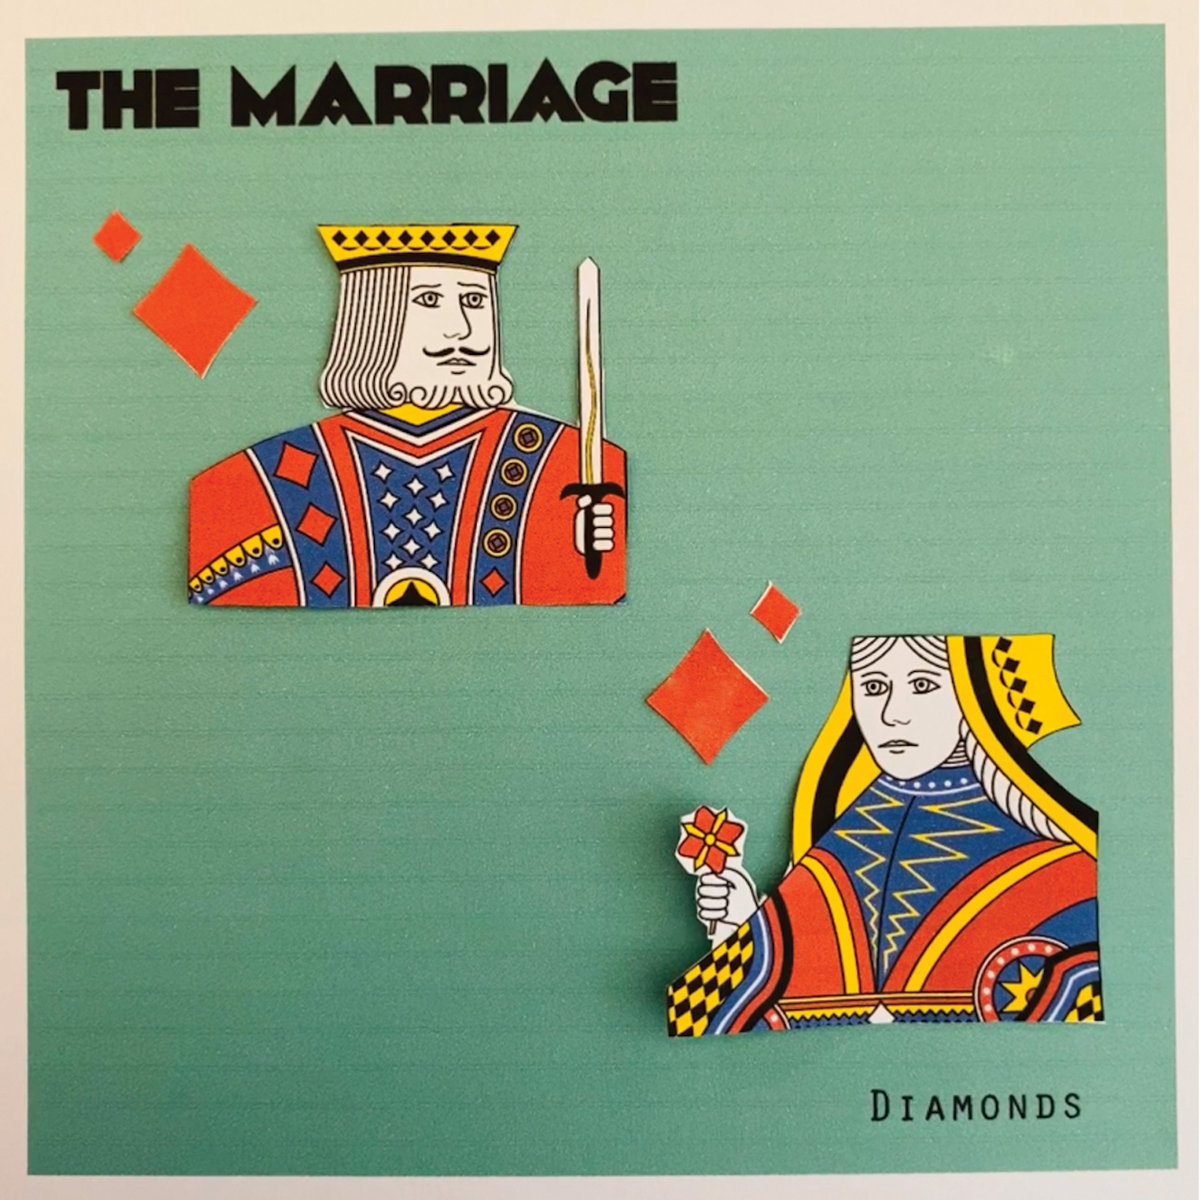 Diamonds by The Marriage